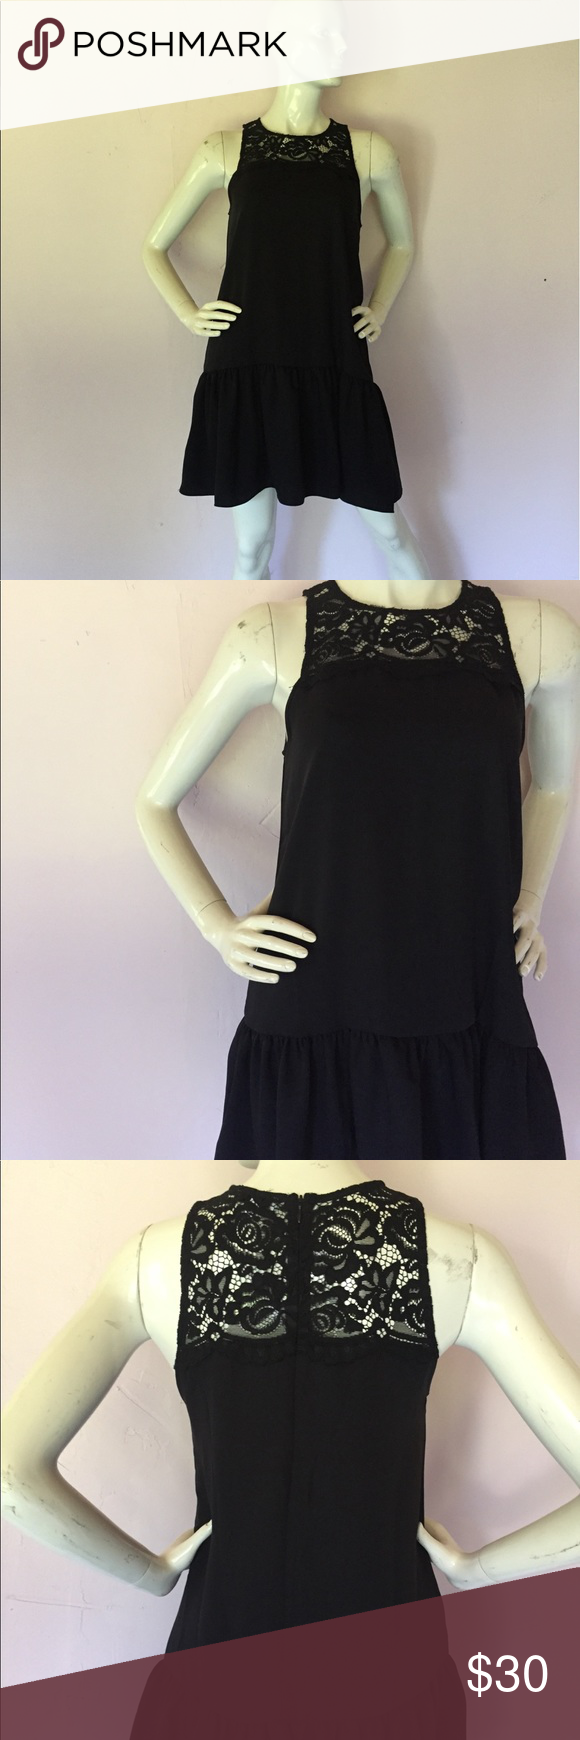 Black sleeveless dress #blacksleevelessdress